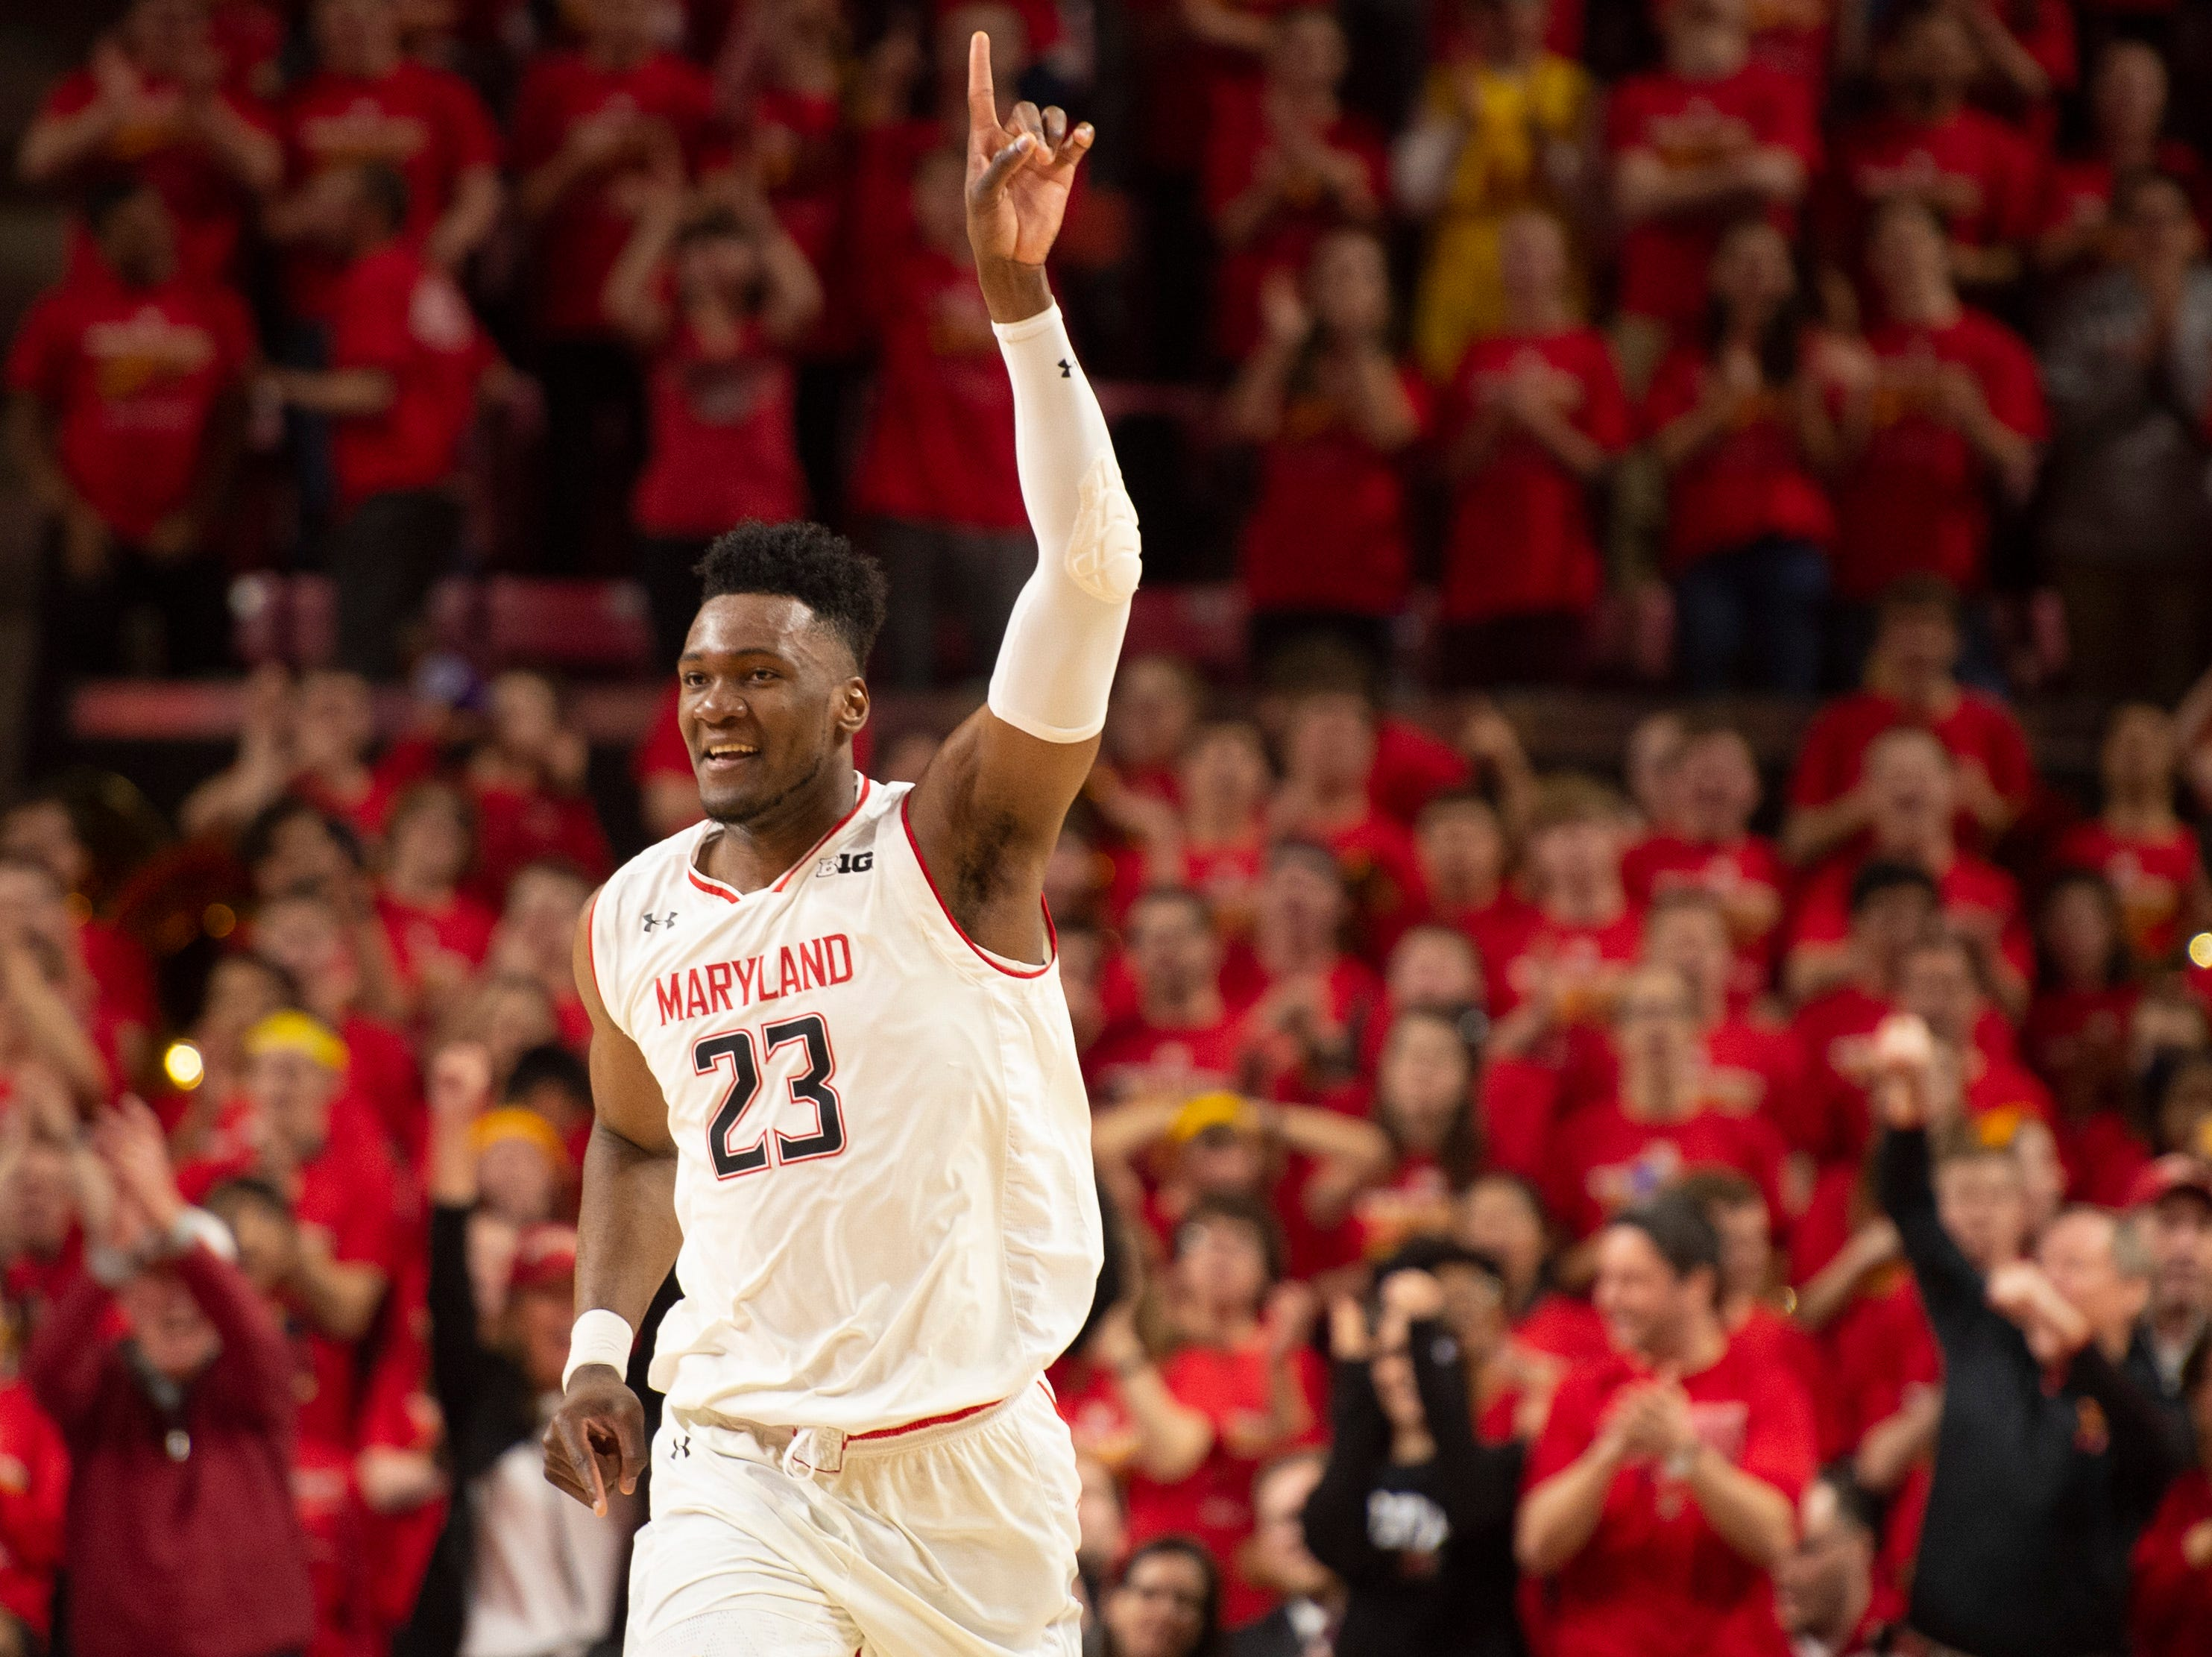 Maryland (22-10), No. 6 seed in East, at-large bid out of the Big Ten Conference.